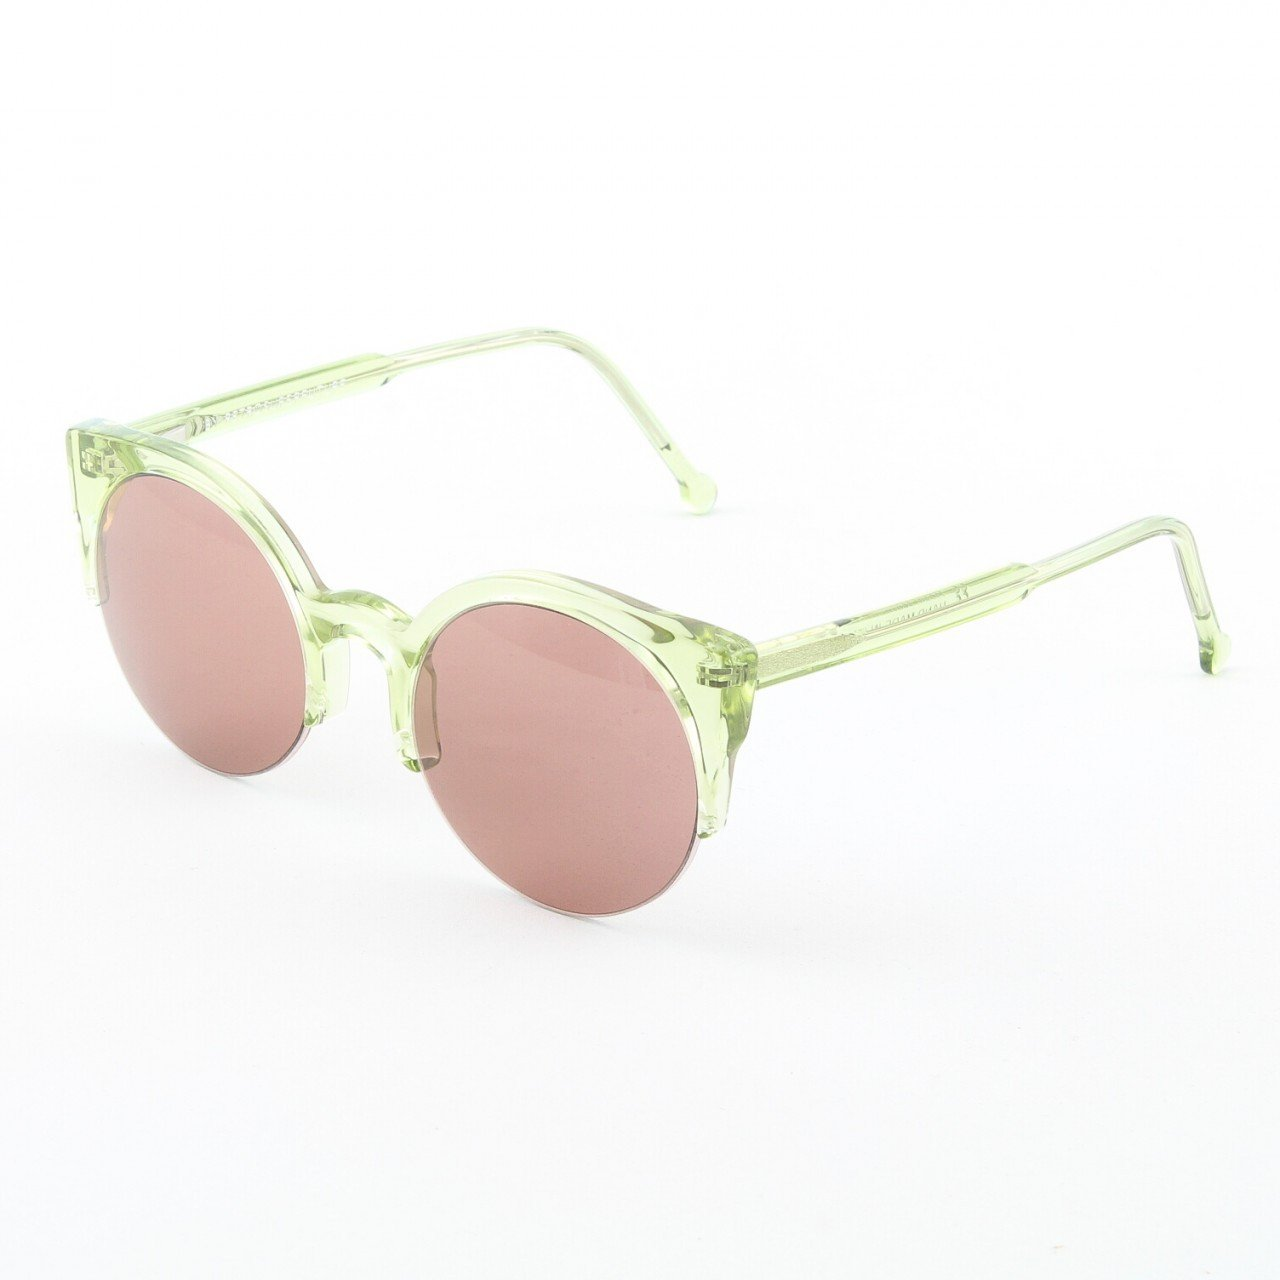 Super Lucia 574/2A Sunglasses Green Crystal with Purple Zeiss Lenses by RETROSUPERFUTURE